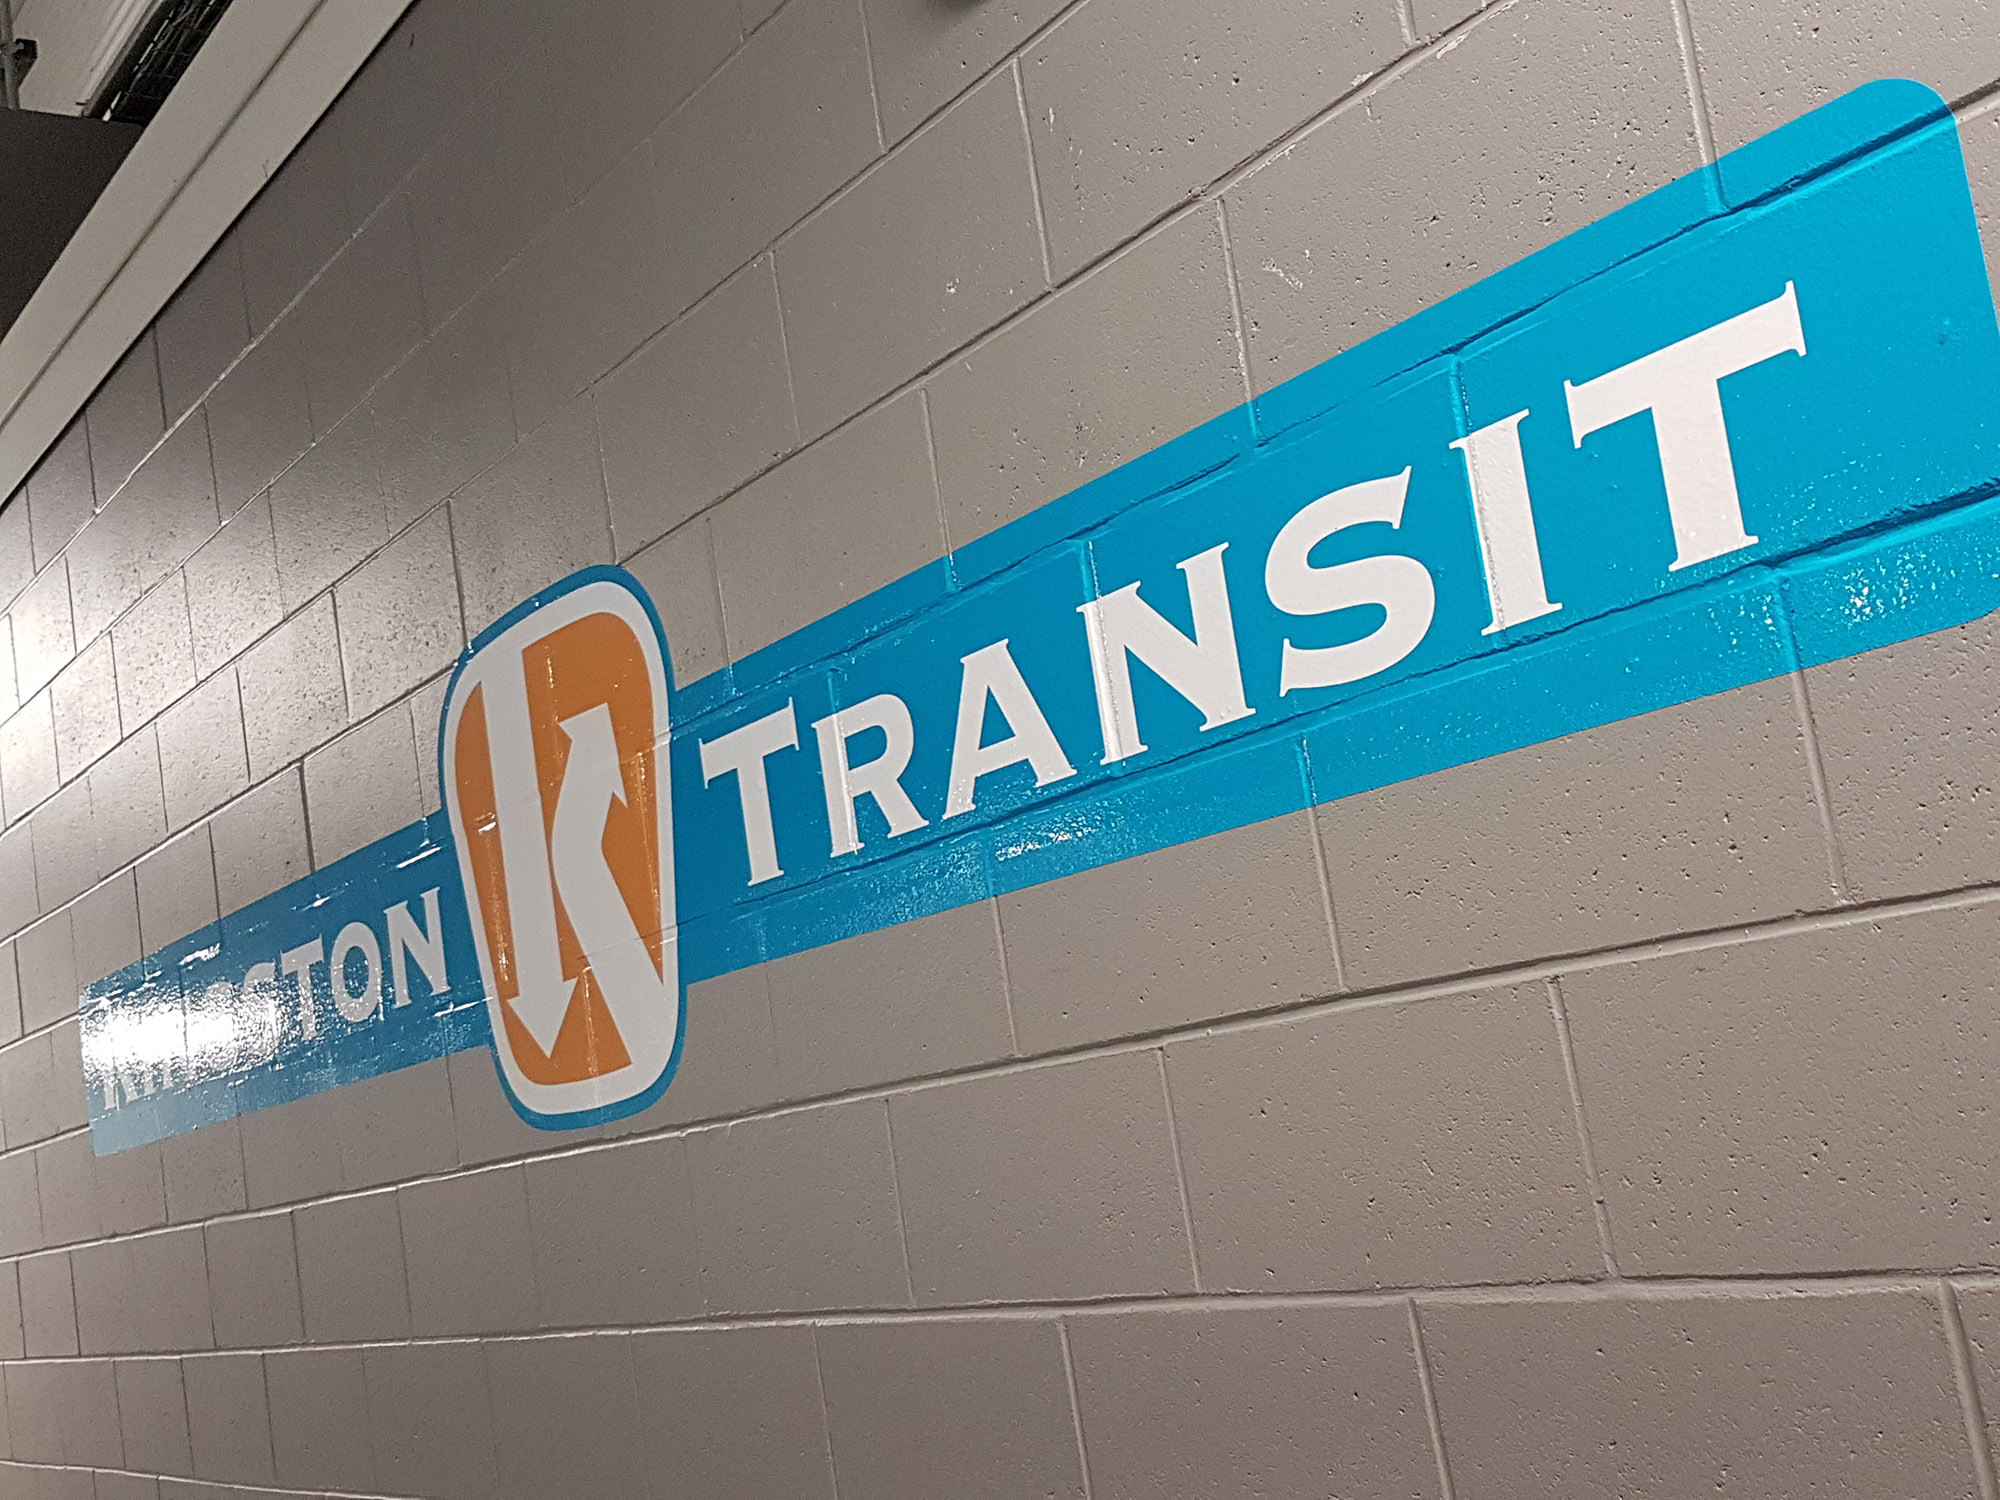 Kingston transit Brick Wall Graphic